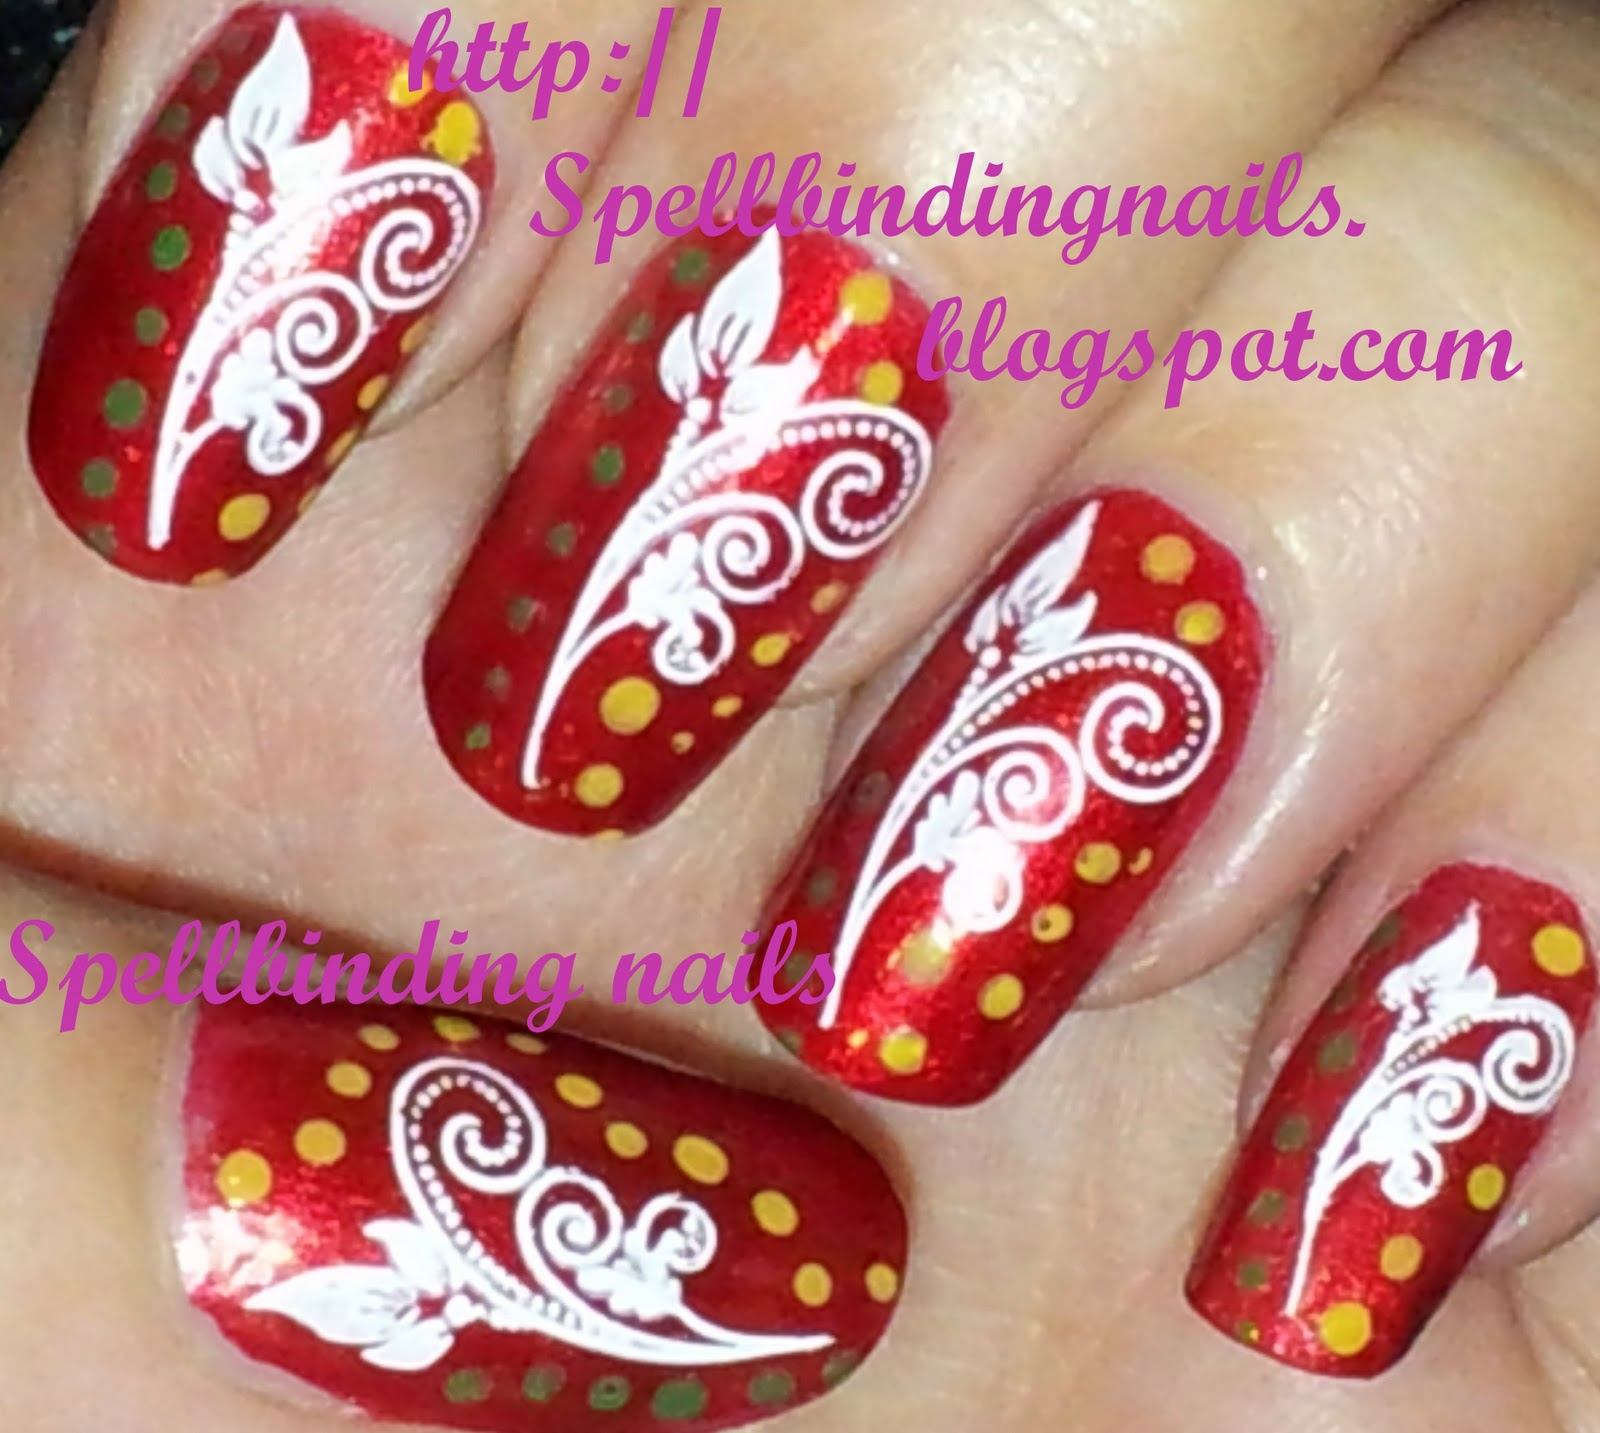 Spellbinding Nails: XL H + ' A Swirly Floral Design